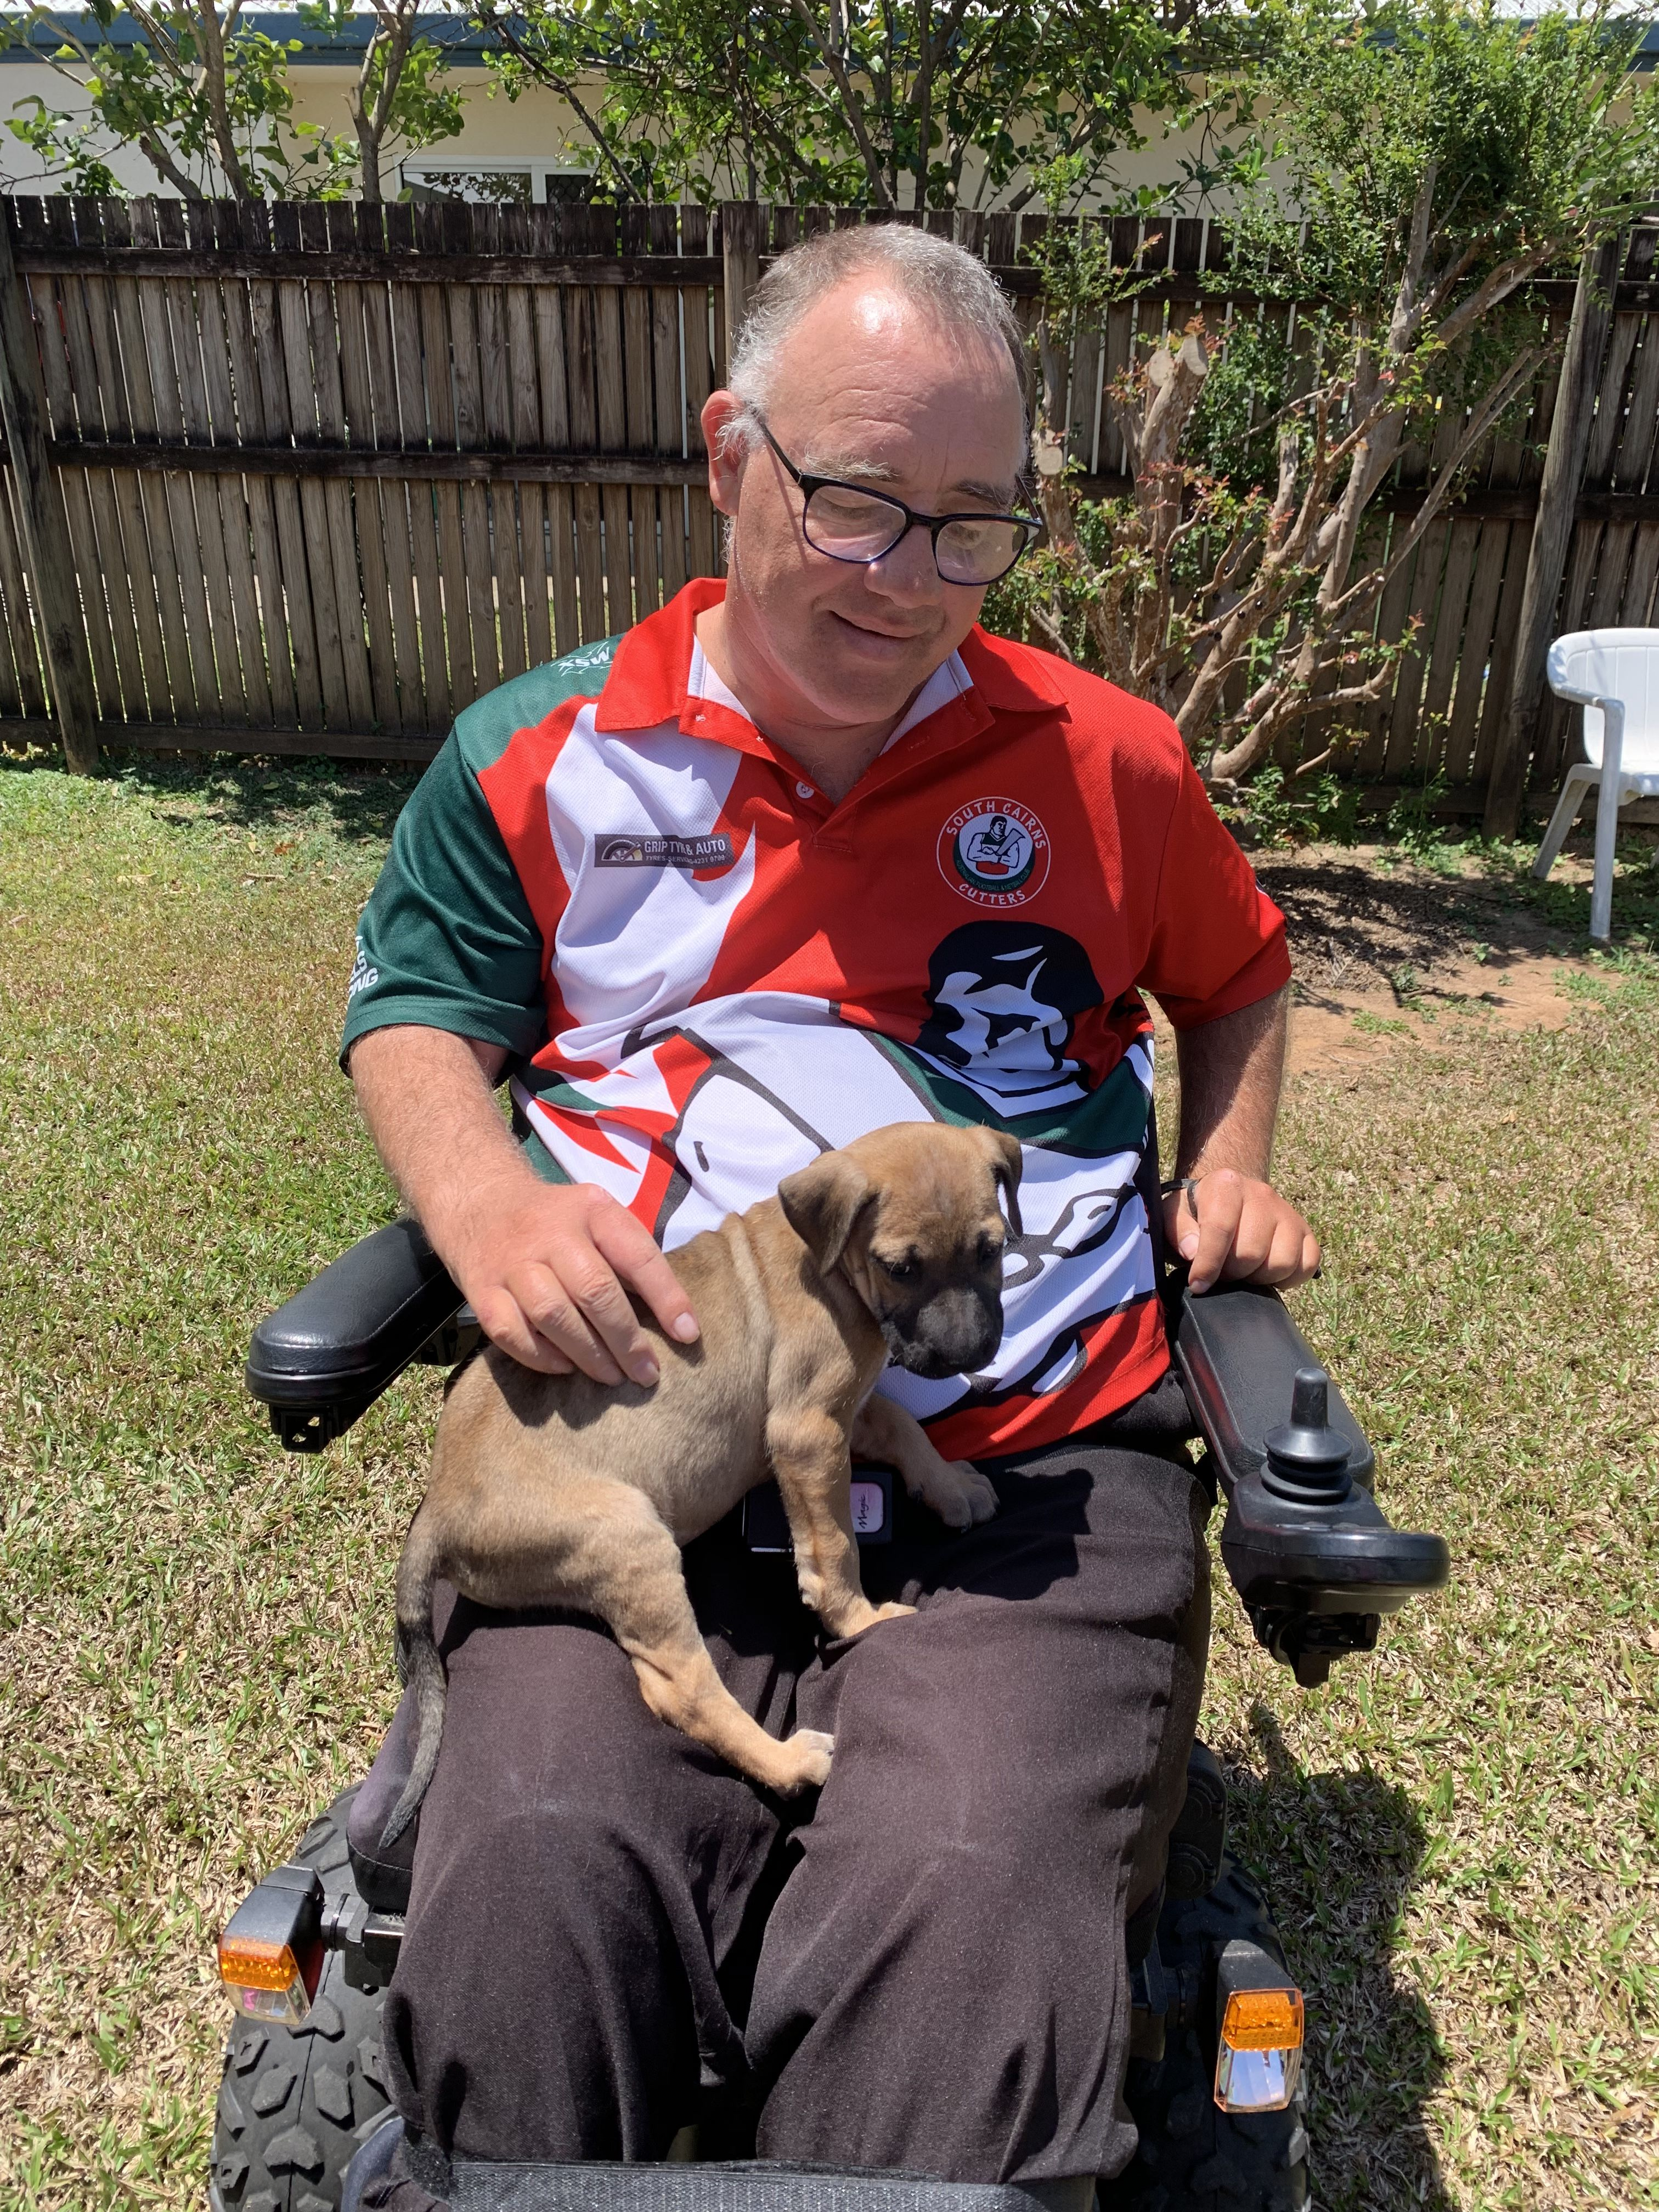 A Rescue Puppy Called Jasmine Is Shaking Things Up At Our Place What A Little Cutie I Just Know We Are Going To Be Great Mates Rescue Puppies Puppies Rescue